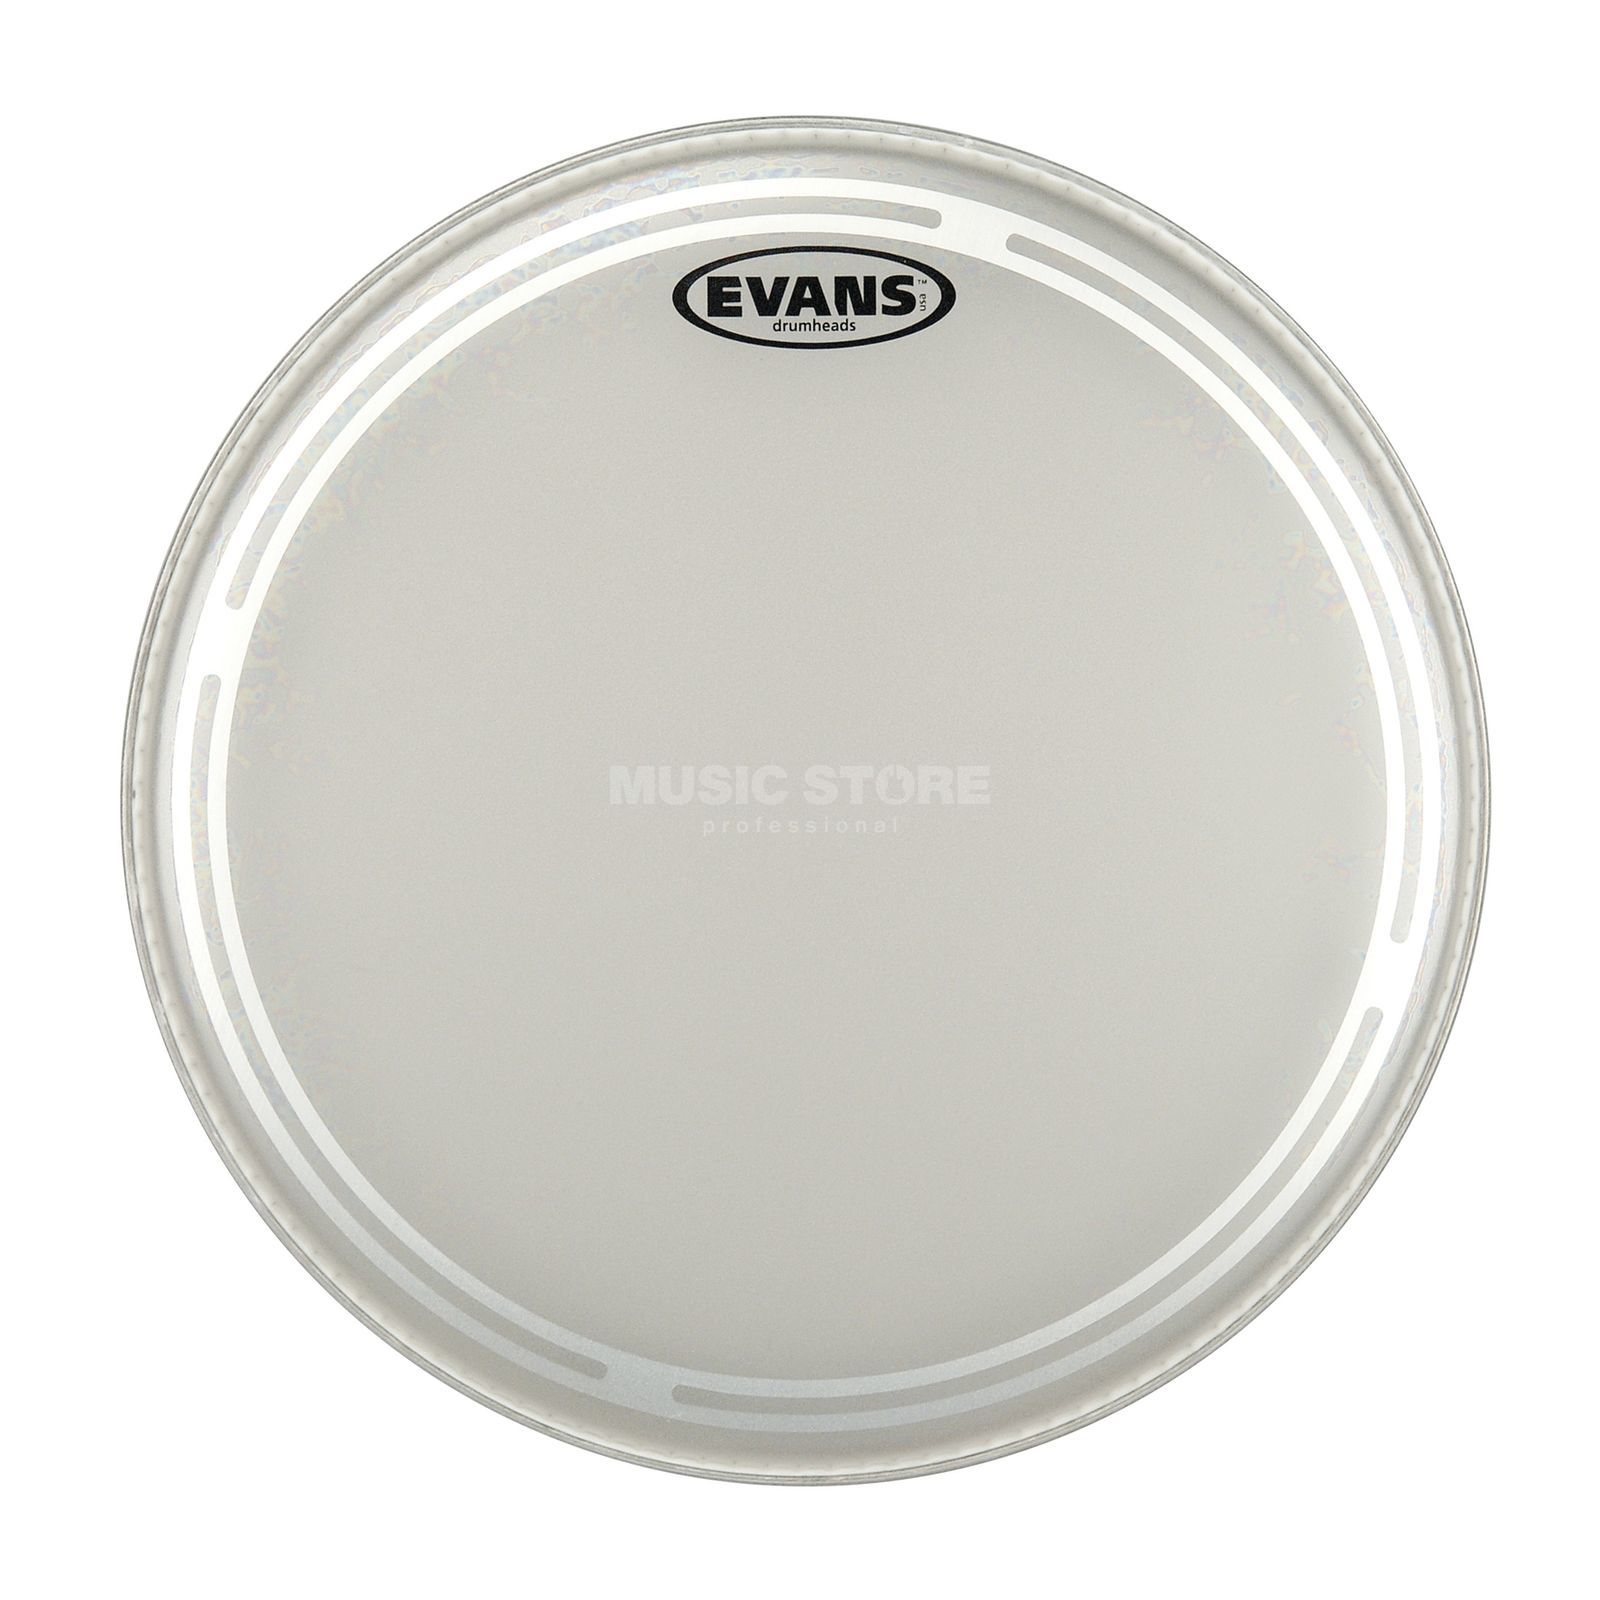 "Evans EC1, 18"", coated, Tom Batter, B-Stock Изображение товара"